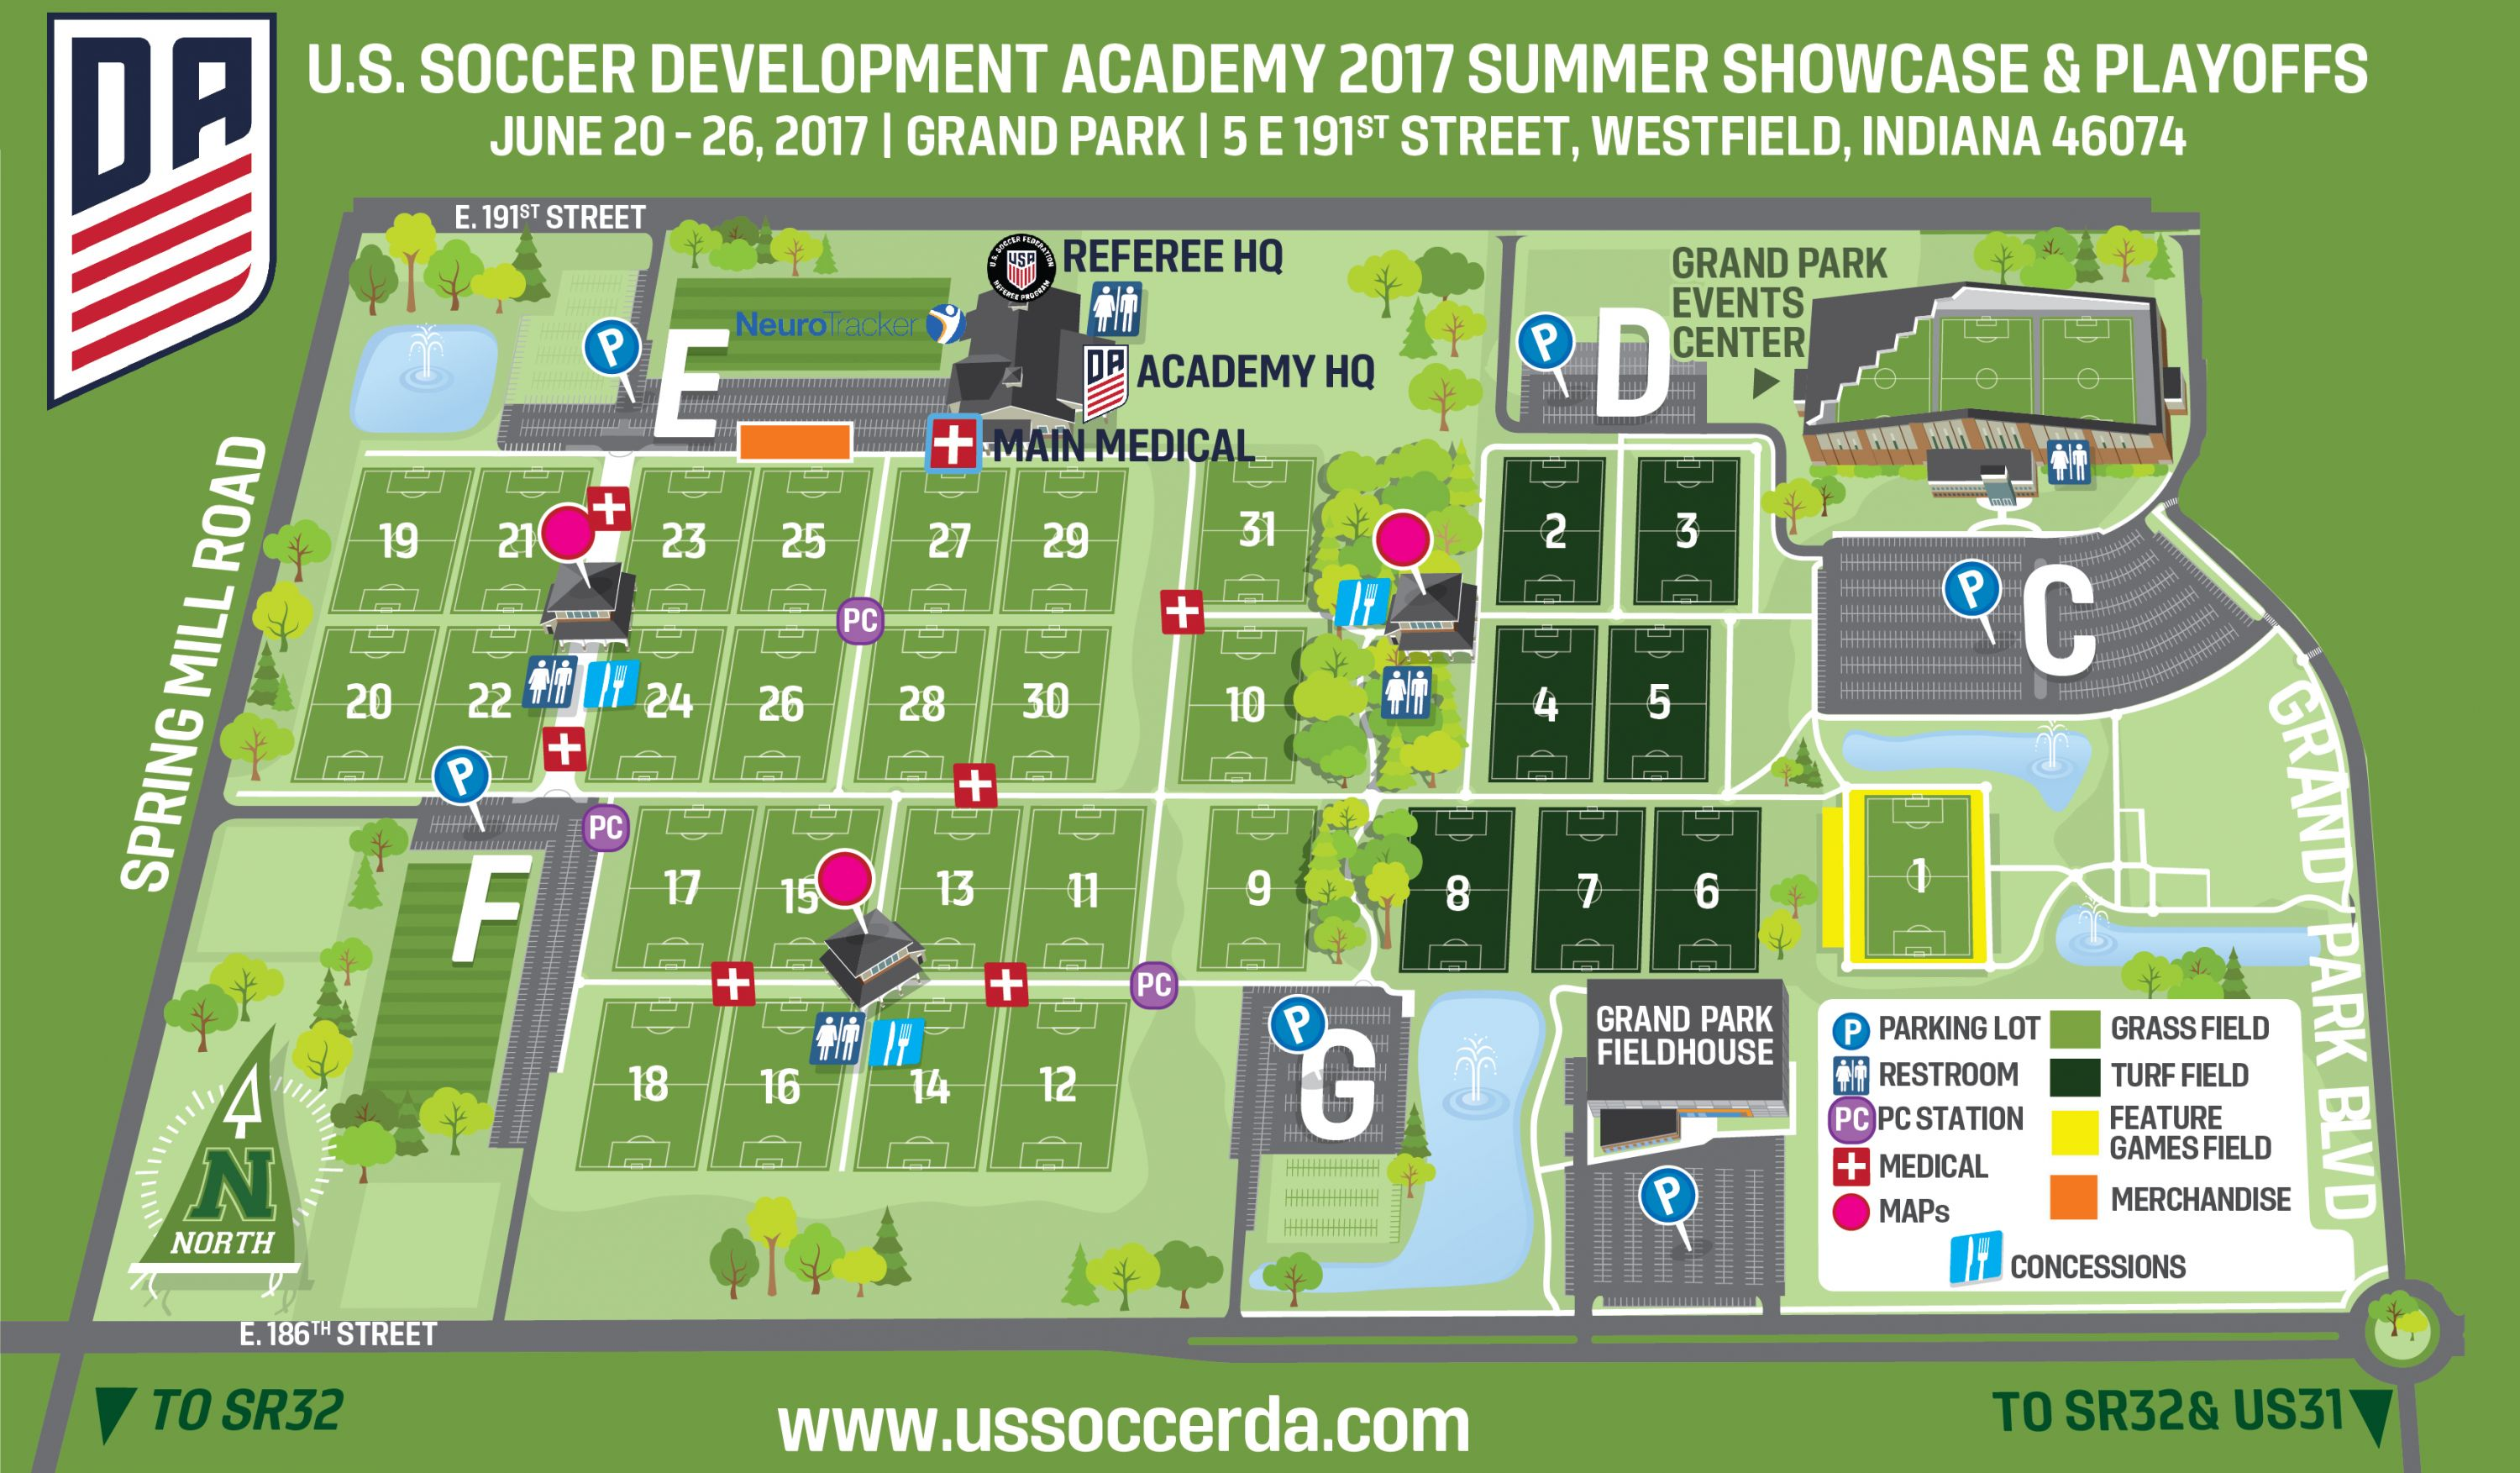 U S Soccer S Official Store Will Located By Lot E Near The North Fields And The Development Academy Hq Purchase Your Official Da On Site Or Online Here